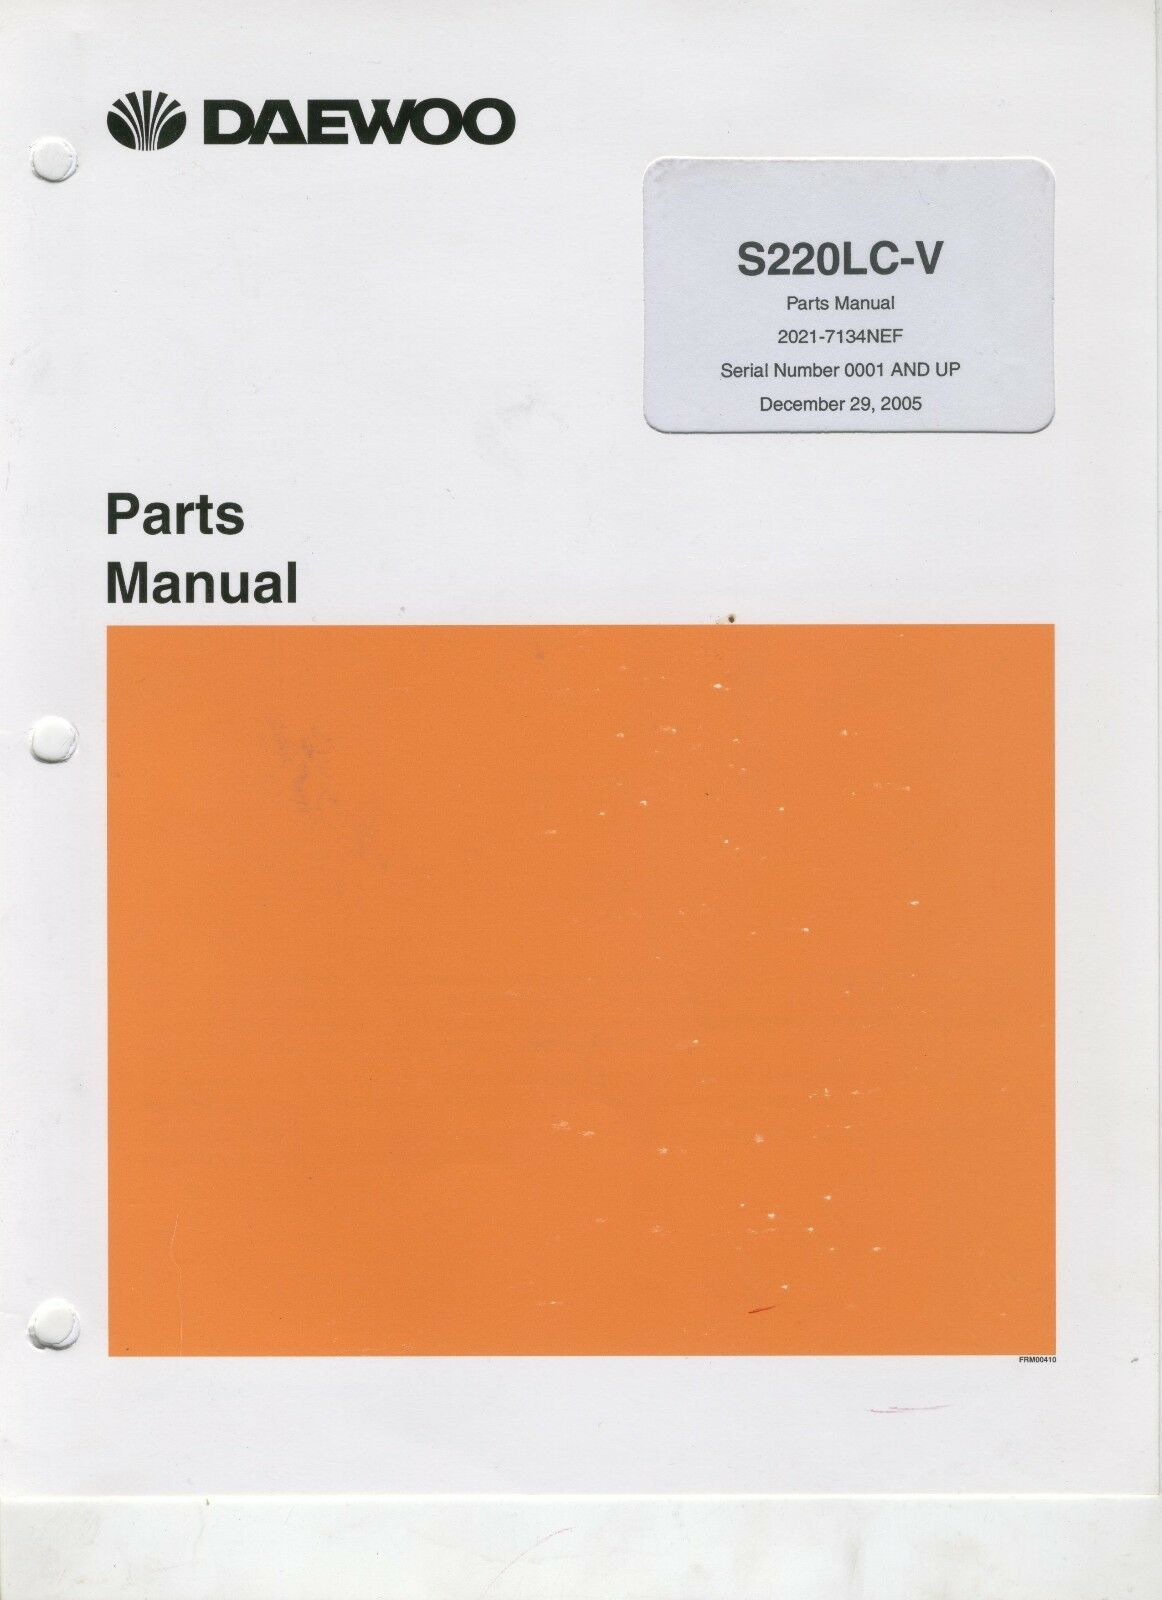 Daewoo Hydraulic Excavator Parts Manual - S220LC-V 1 of 4Only 1 available  ...